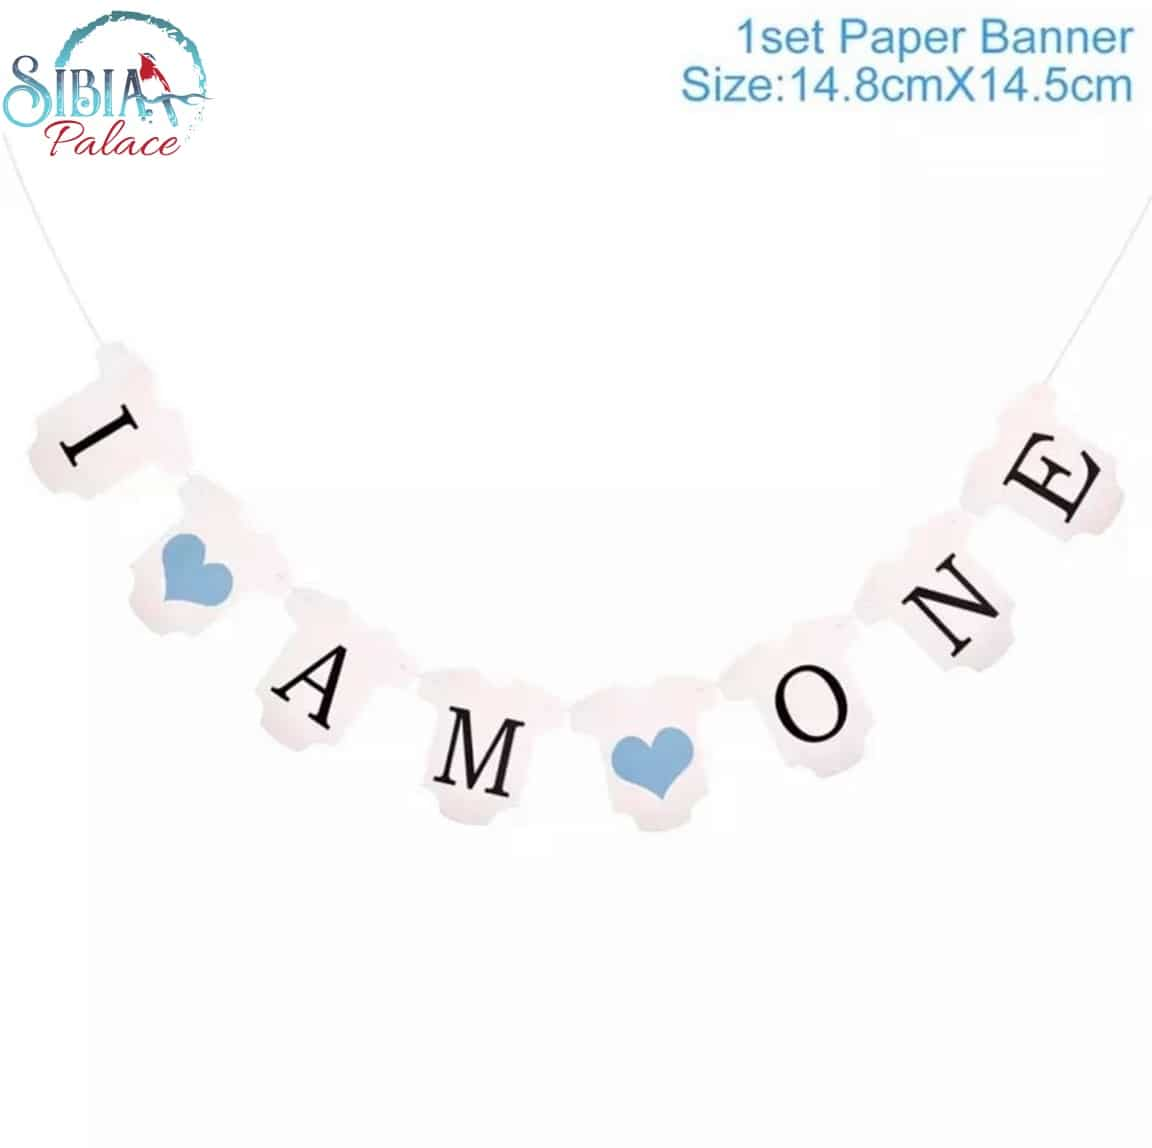 Sibia Palace I Am One Baby Boy Party Supplies Blue Banner